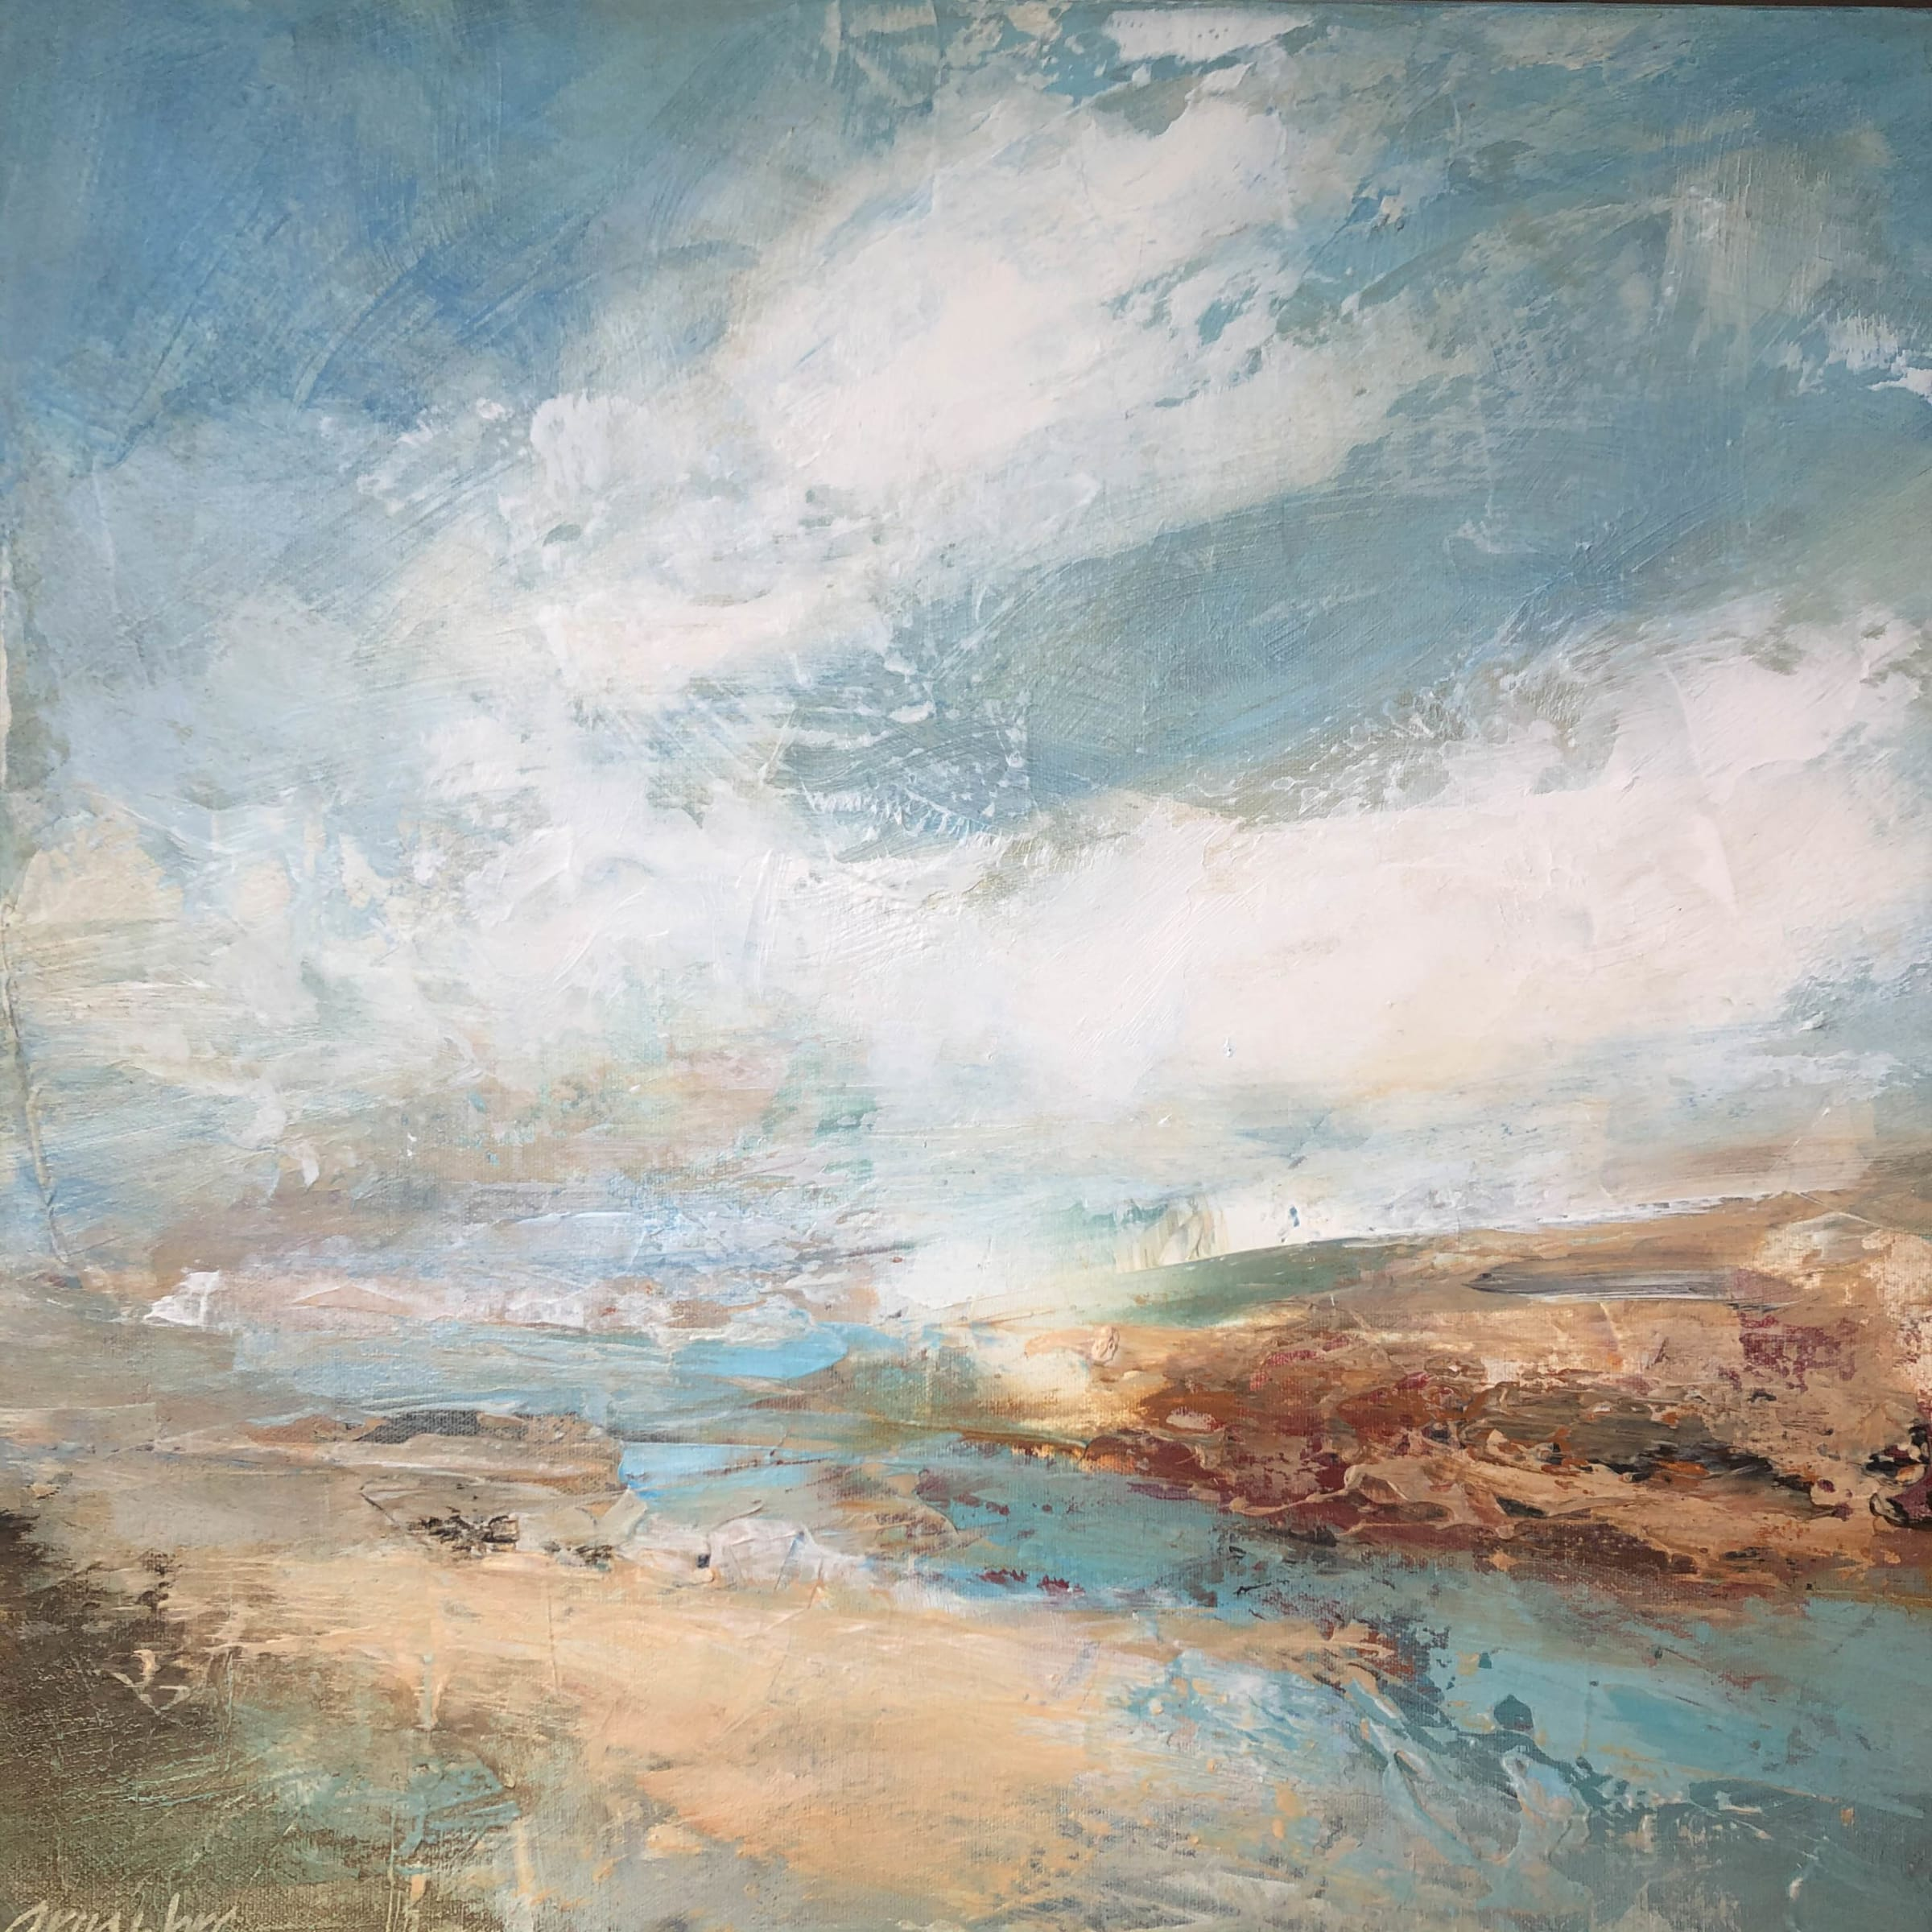 "<span class=""link fancybox-details-link""><a href=""/artists/41-erin-ward/works/7227-erin-ward-summer-sky-2020/"">View Detail Page</a></span><div class=""artist""><strong>Erin Ward</strong></div> b. 1966 <div class=""title""><em>Summer Sky </em>, 2020</div> <div class=""medium"">acrylic on canvas</div> <div class=""dimensions"">h. 52 cm x w. 52 cm</div><div class=""price"">£1,090.00</div><div class=""copyright_line"">Ownart: £109 x 10 Months, 0% APR</div>"